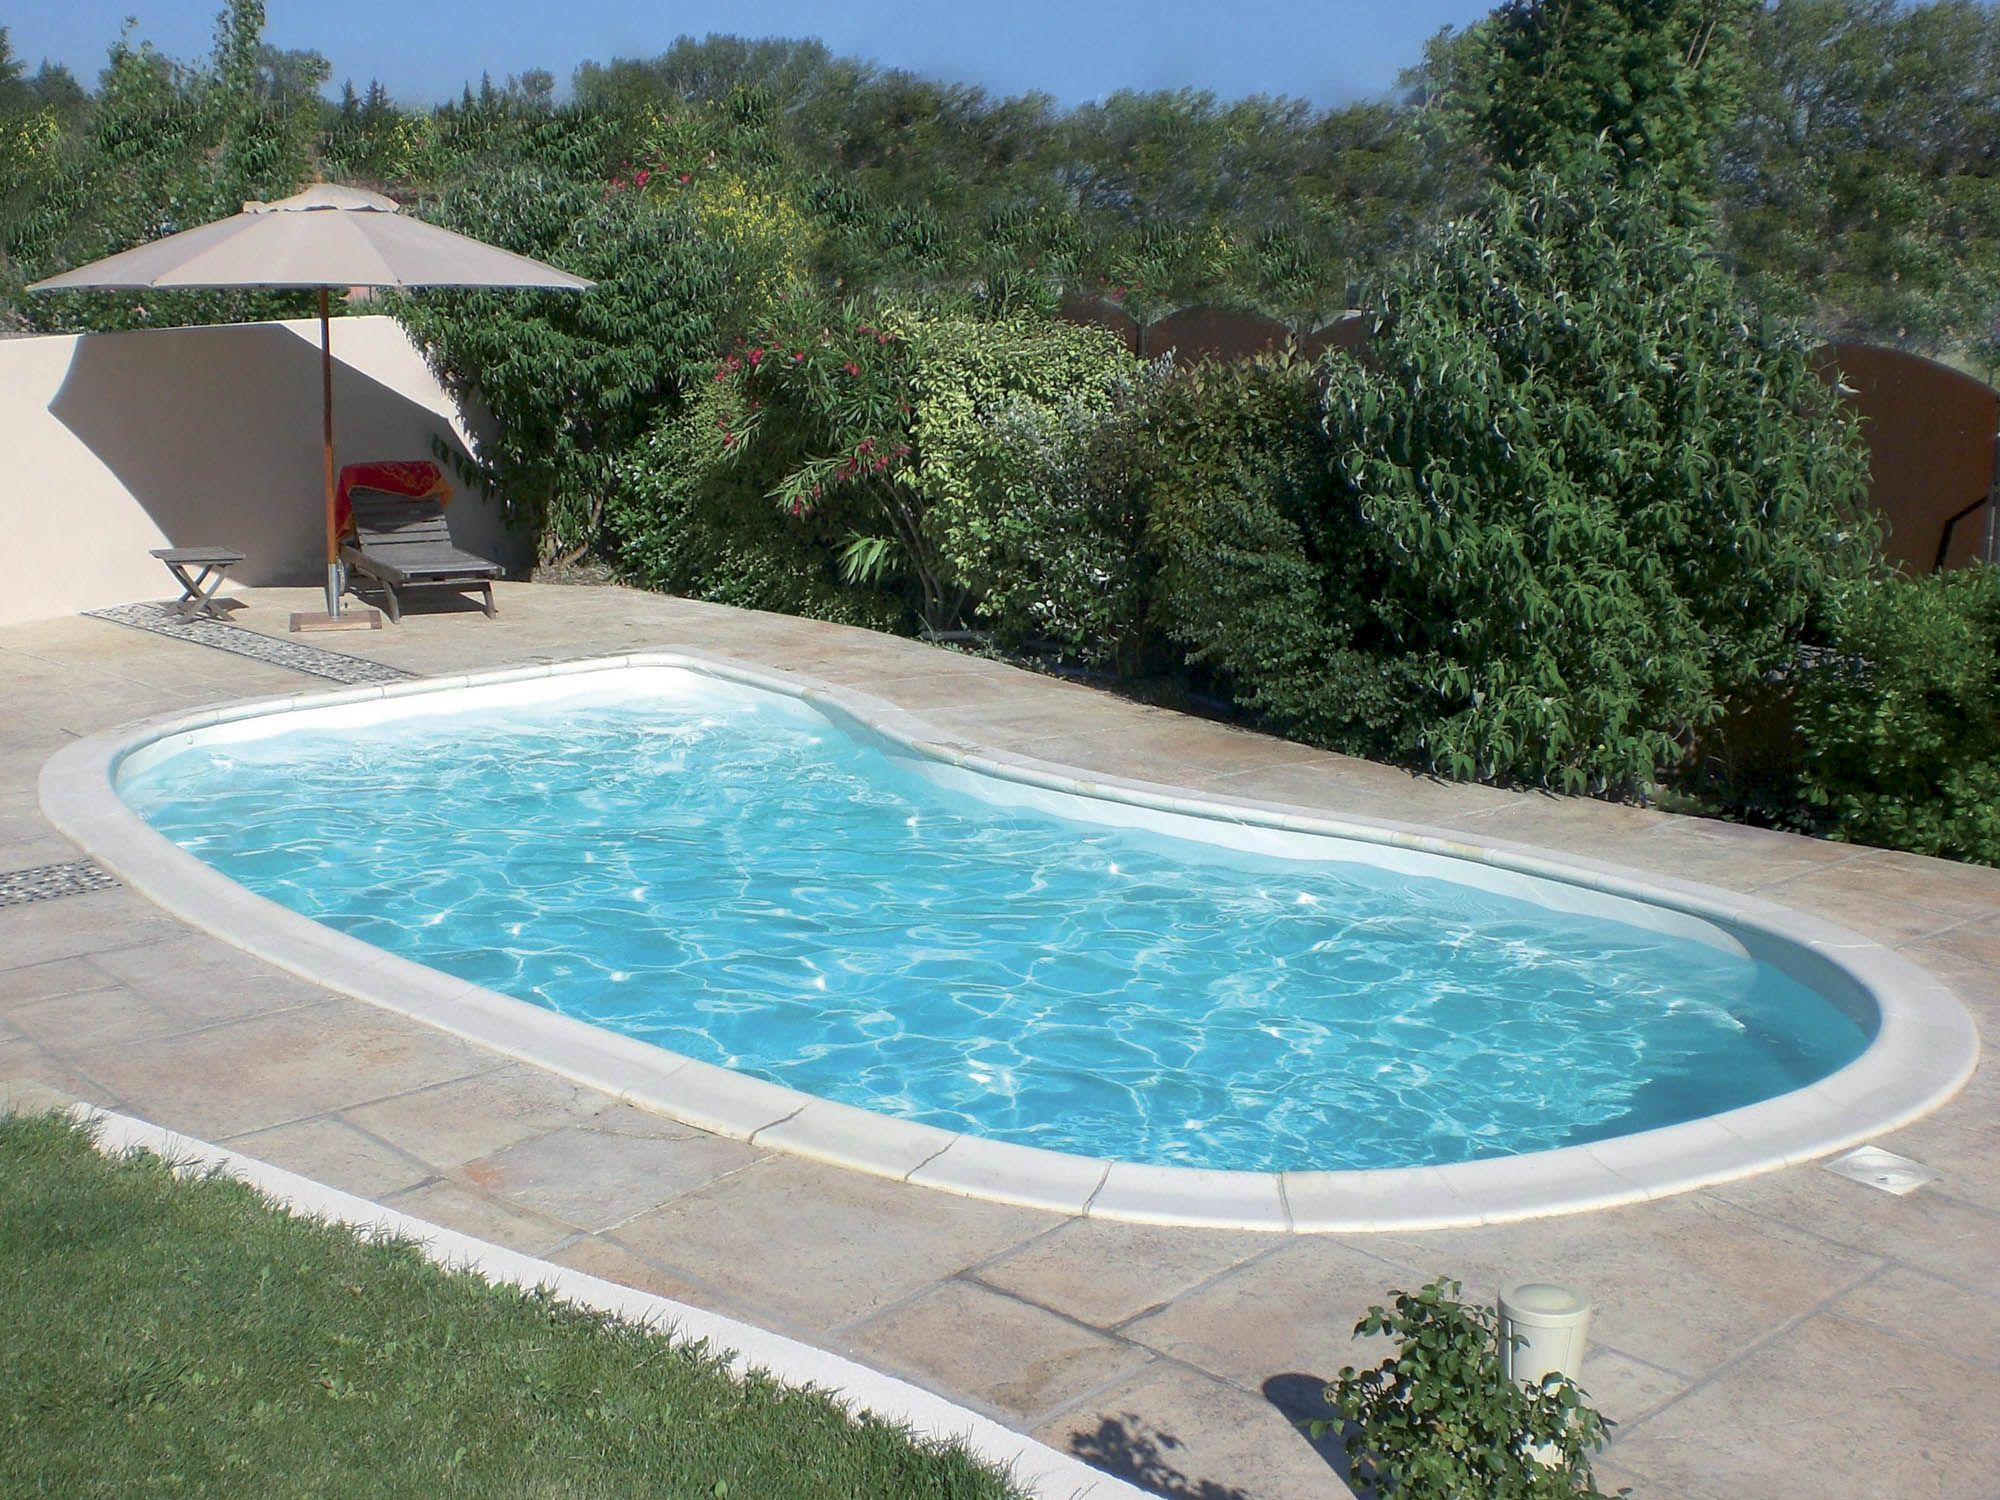 Piscine coque polyester ovation piscine haricot for Coque piscine 10x5